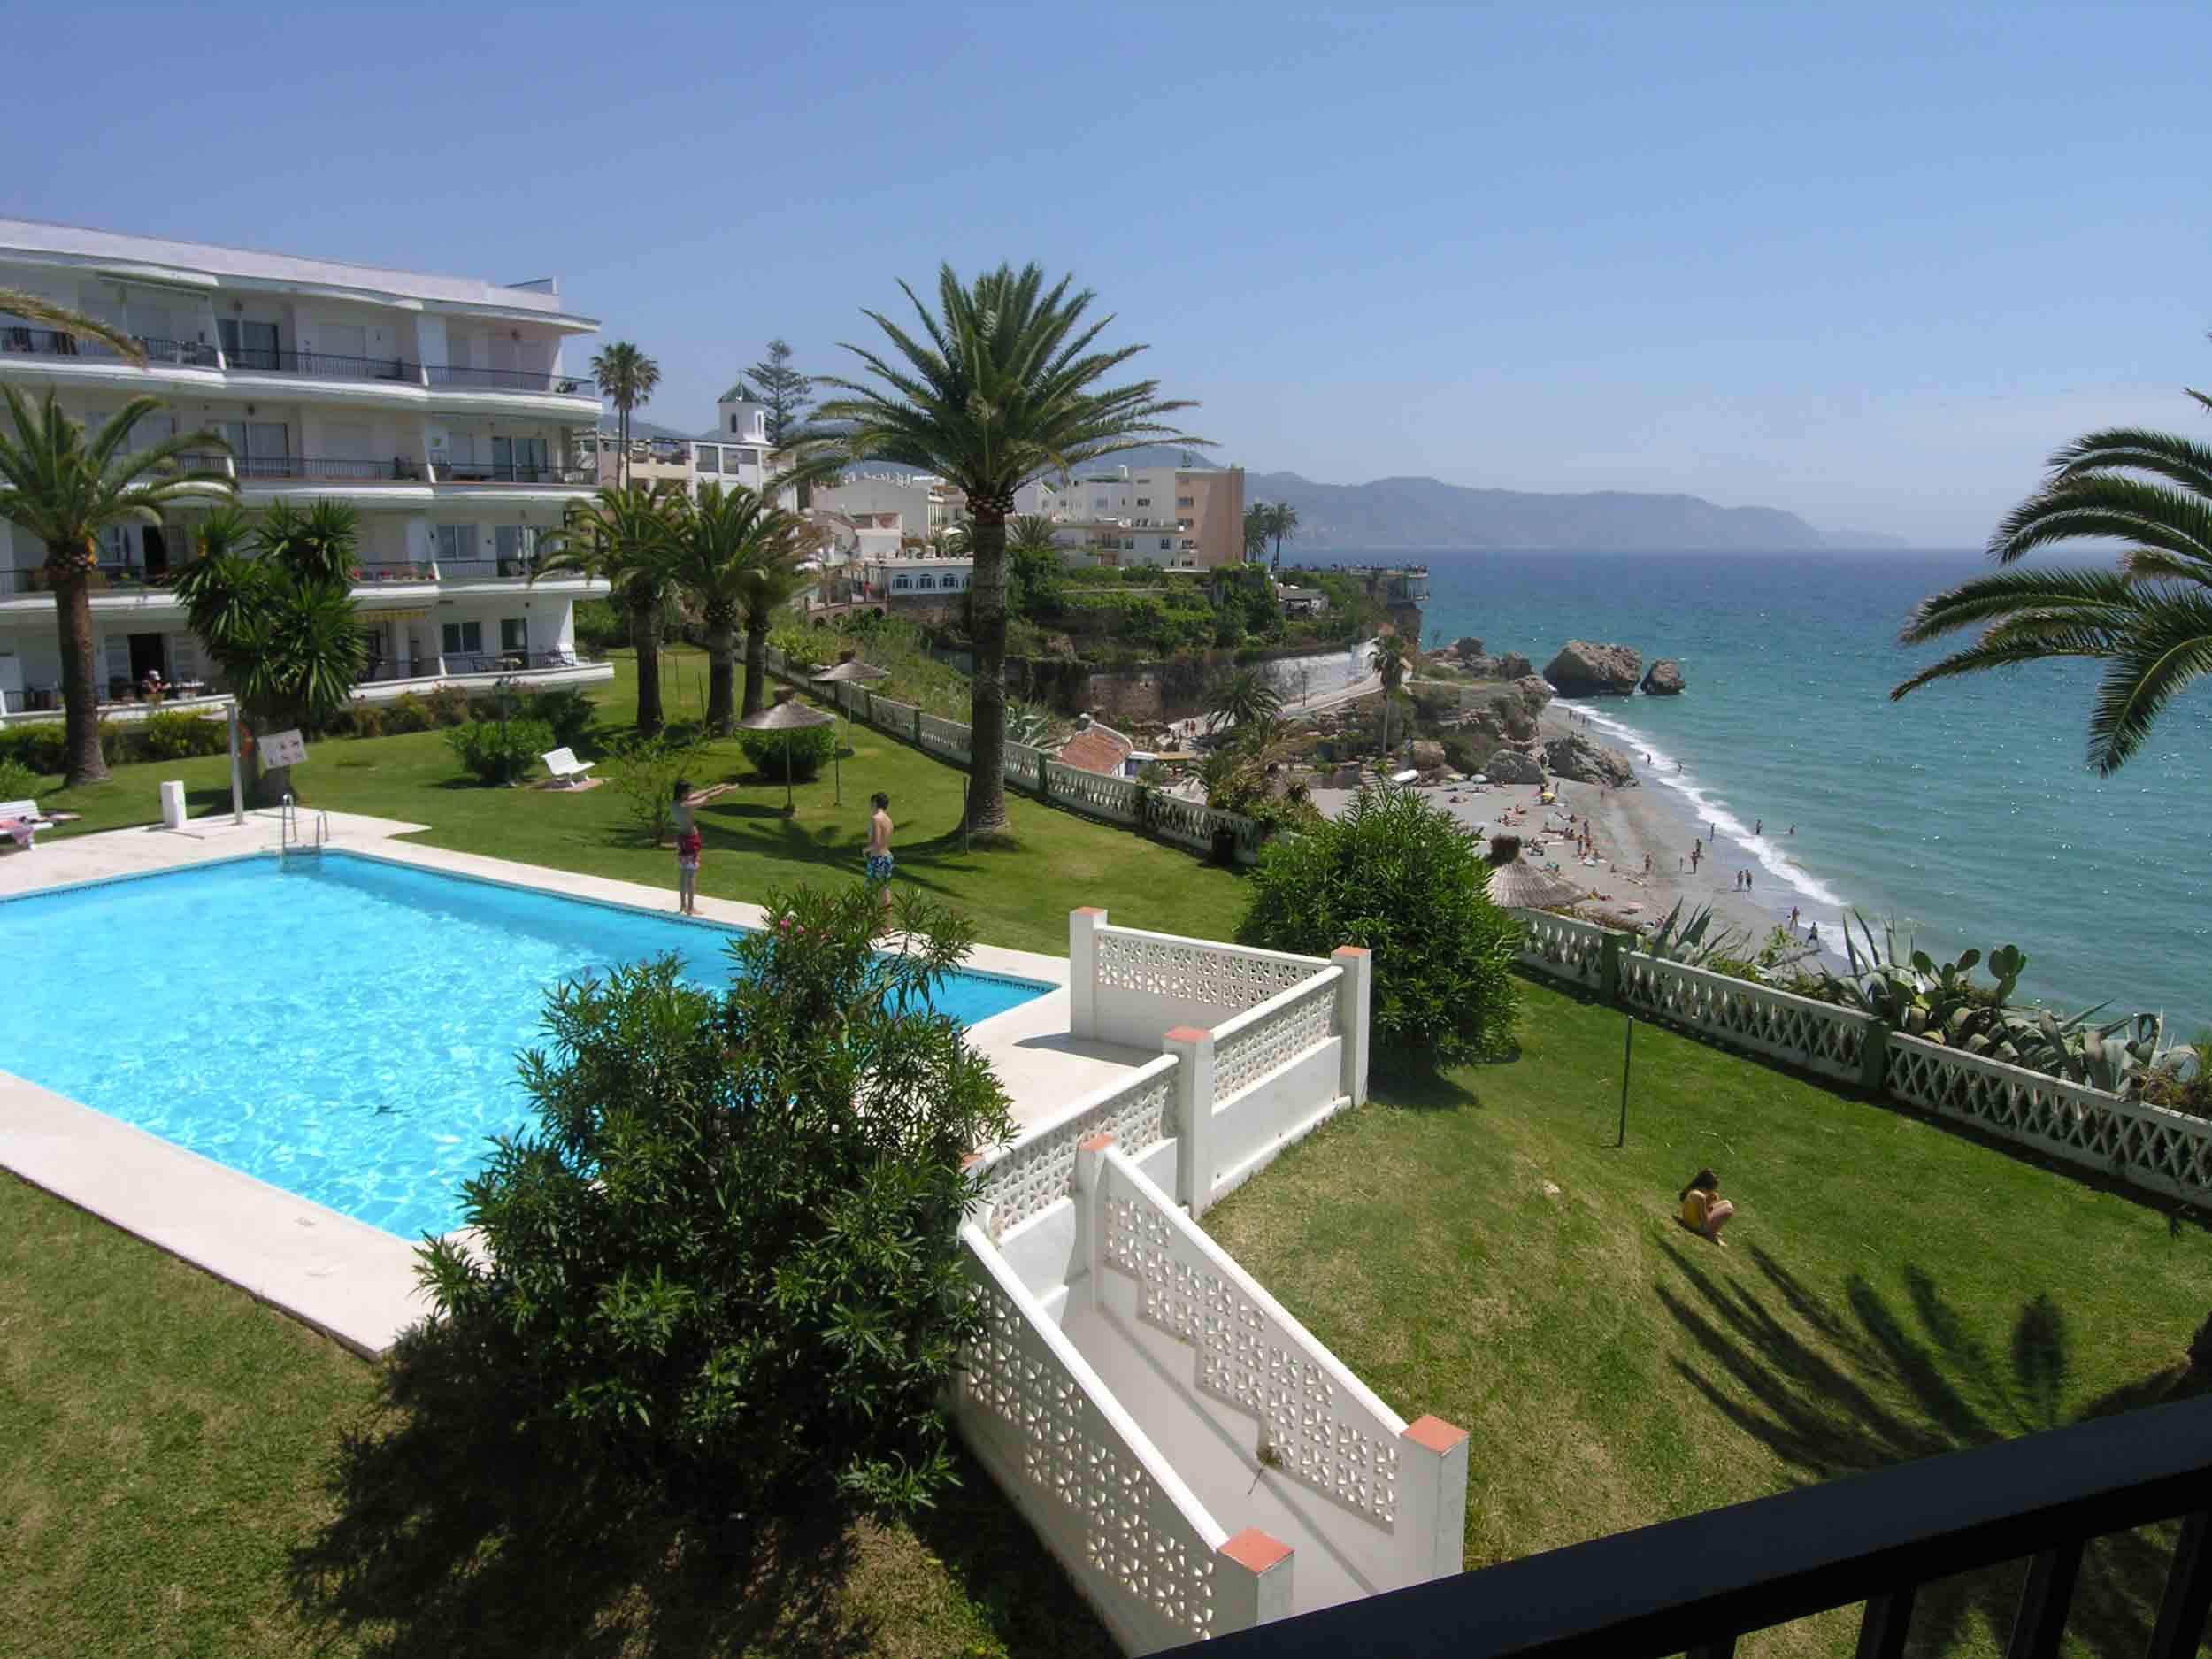 Awesome Accommodation In Nerja, Nerja Accommodation, Villas In Nerja, Nerja Villas, Nerja  Apartments